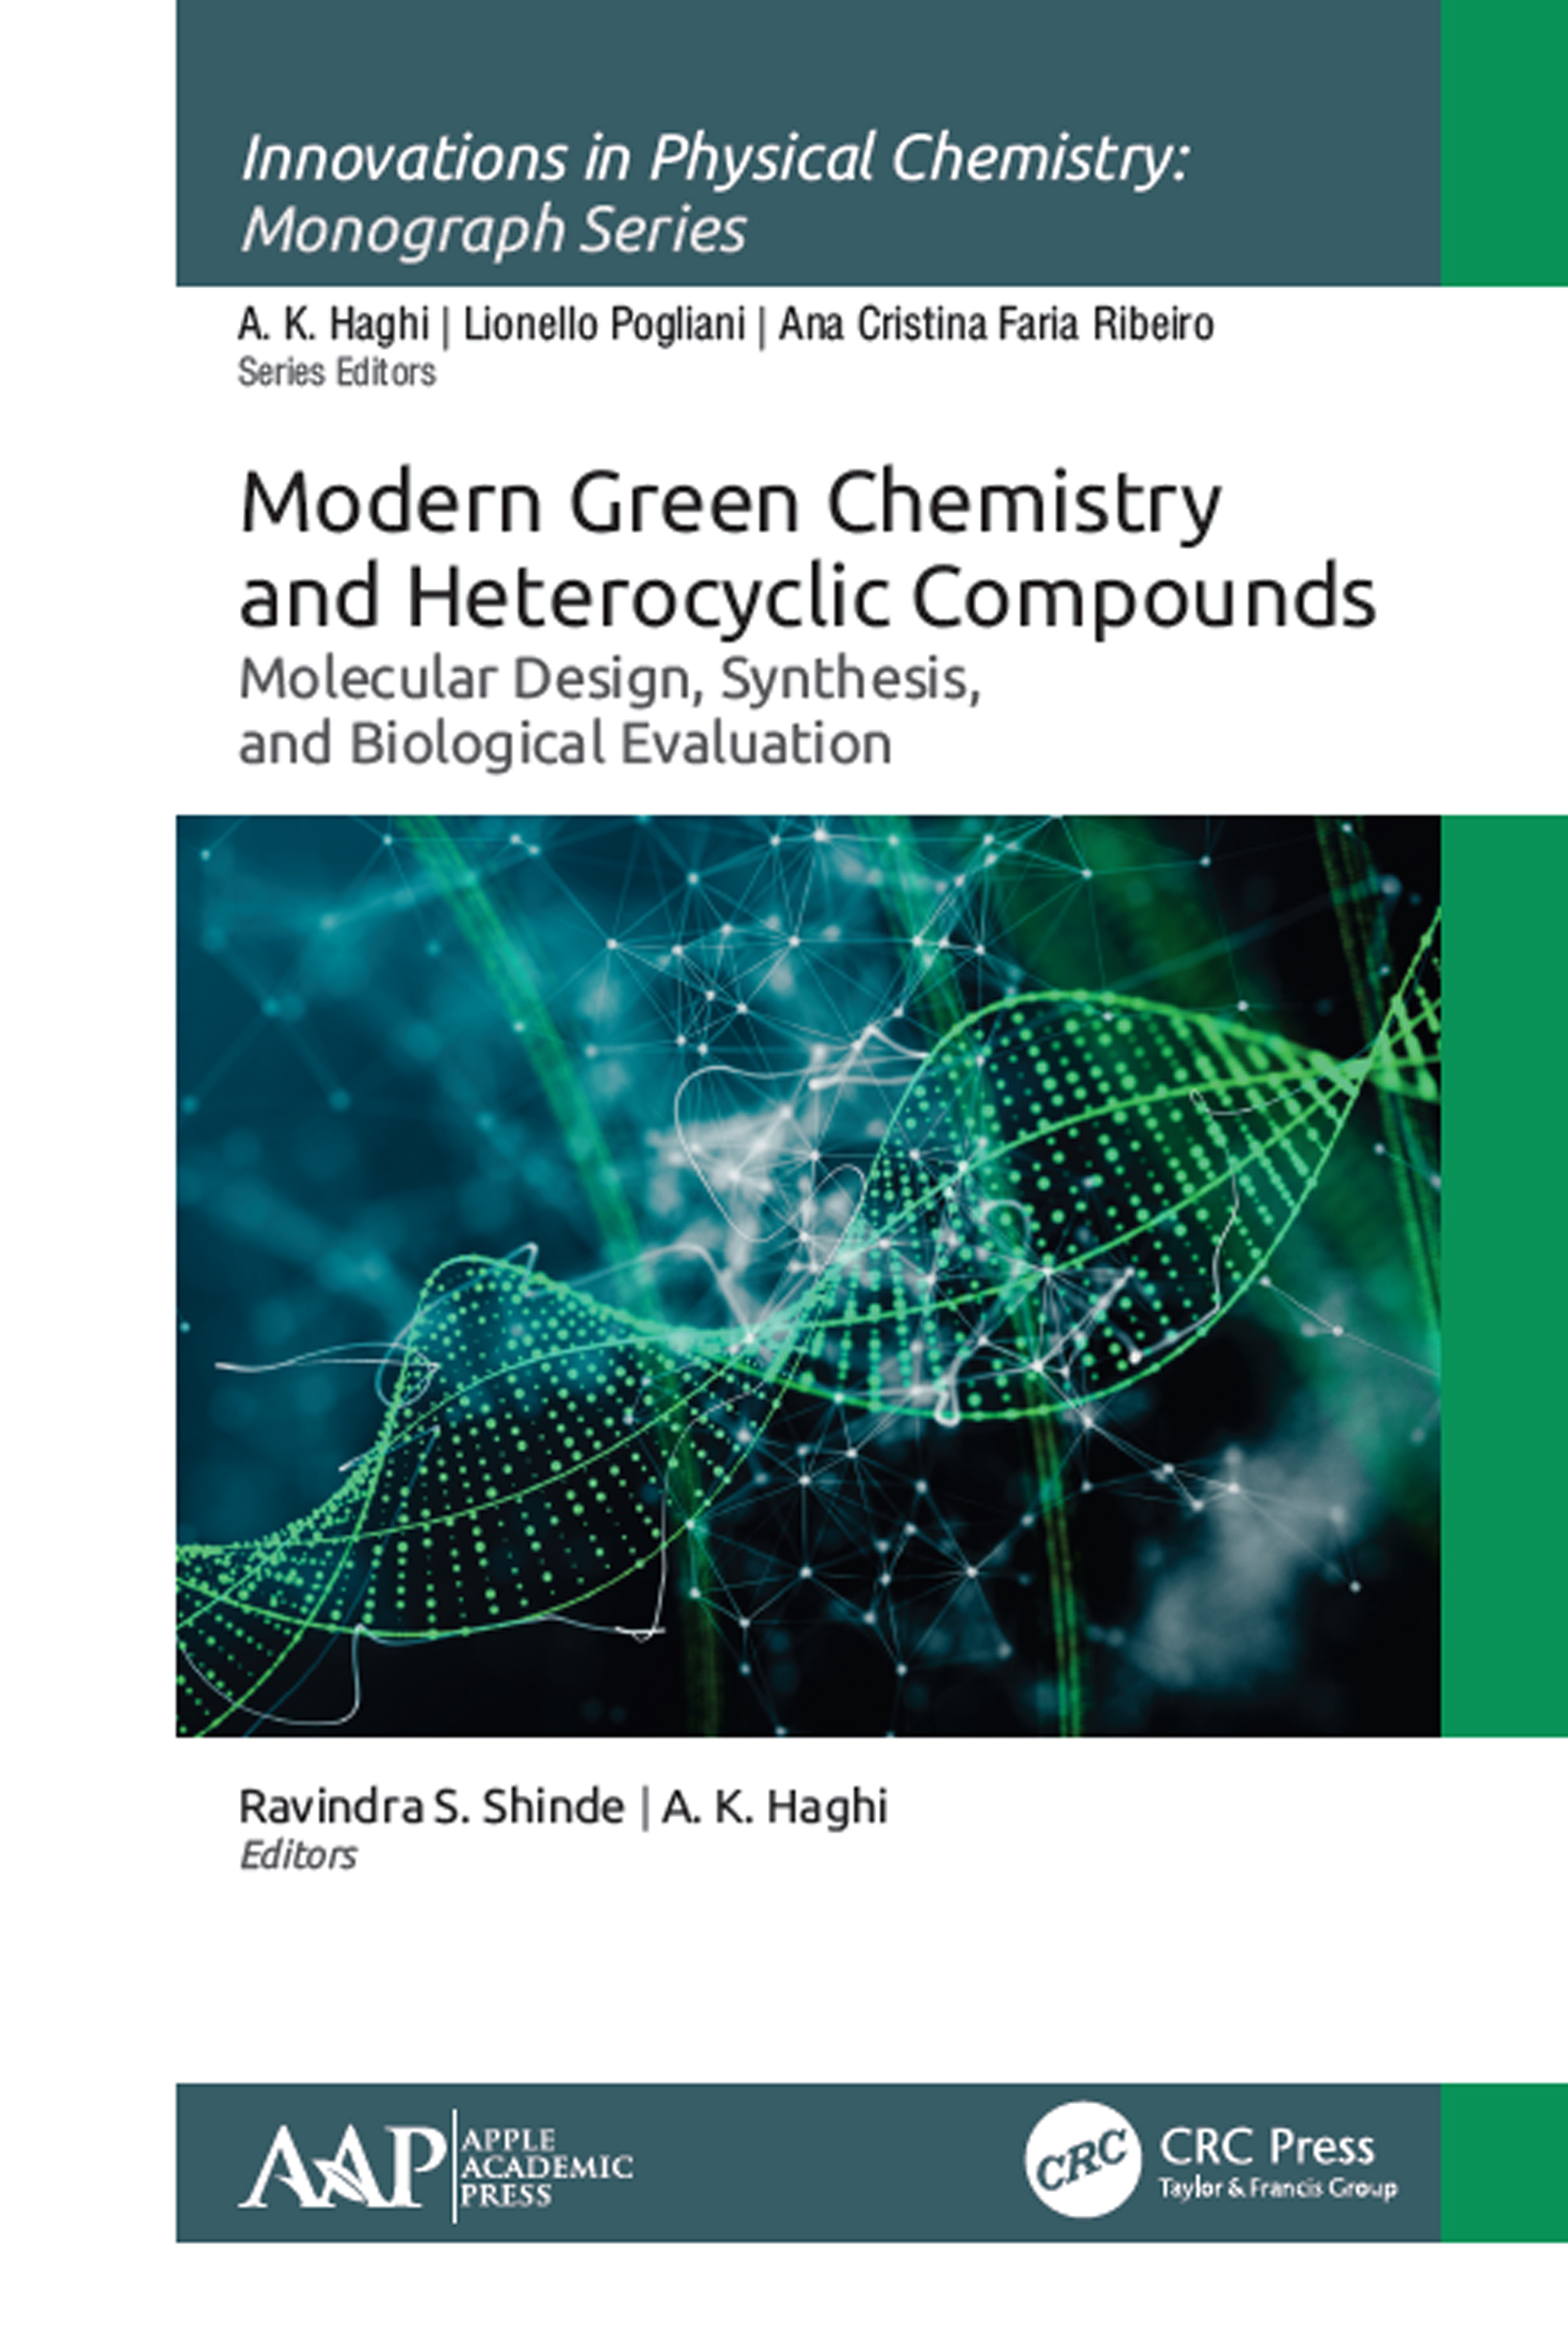 Modern Green Chemistry and Heterocyclic Compounds: Molecular Design, Synthesis, and Biological Evaluation book cover